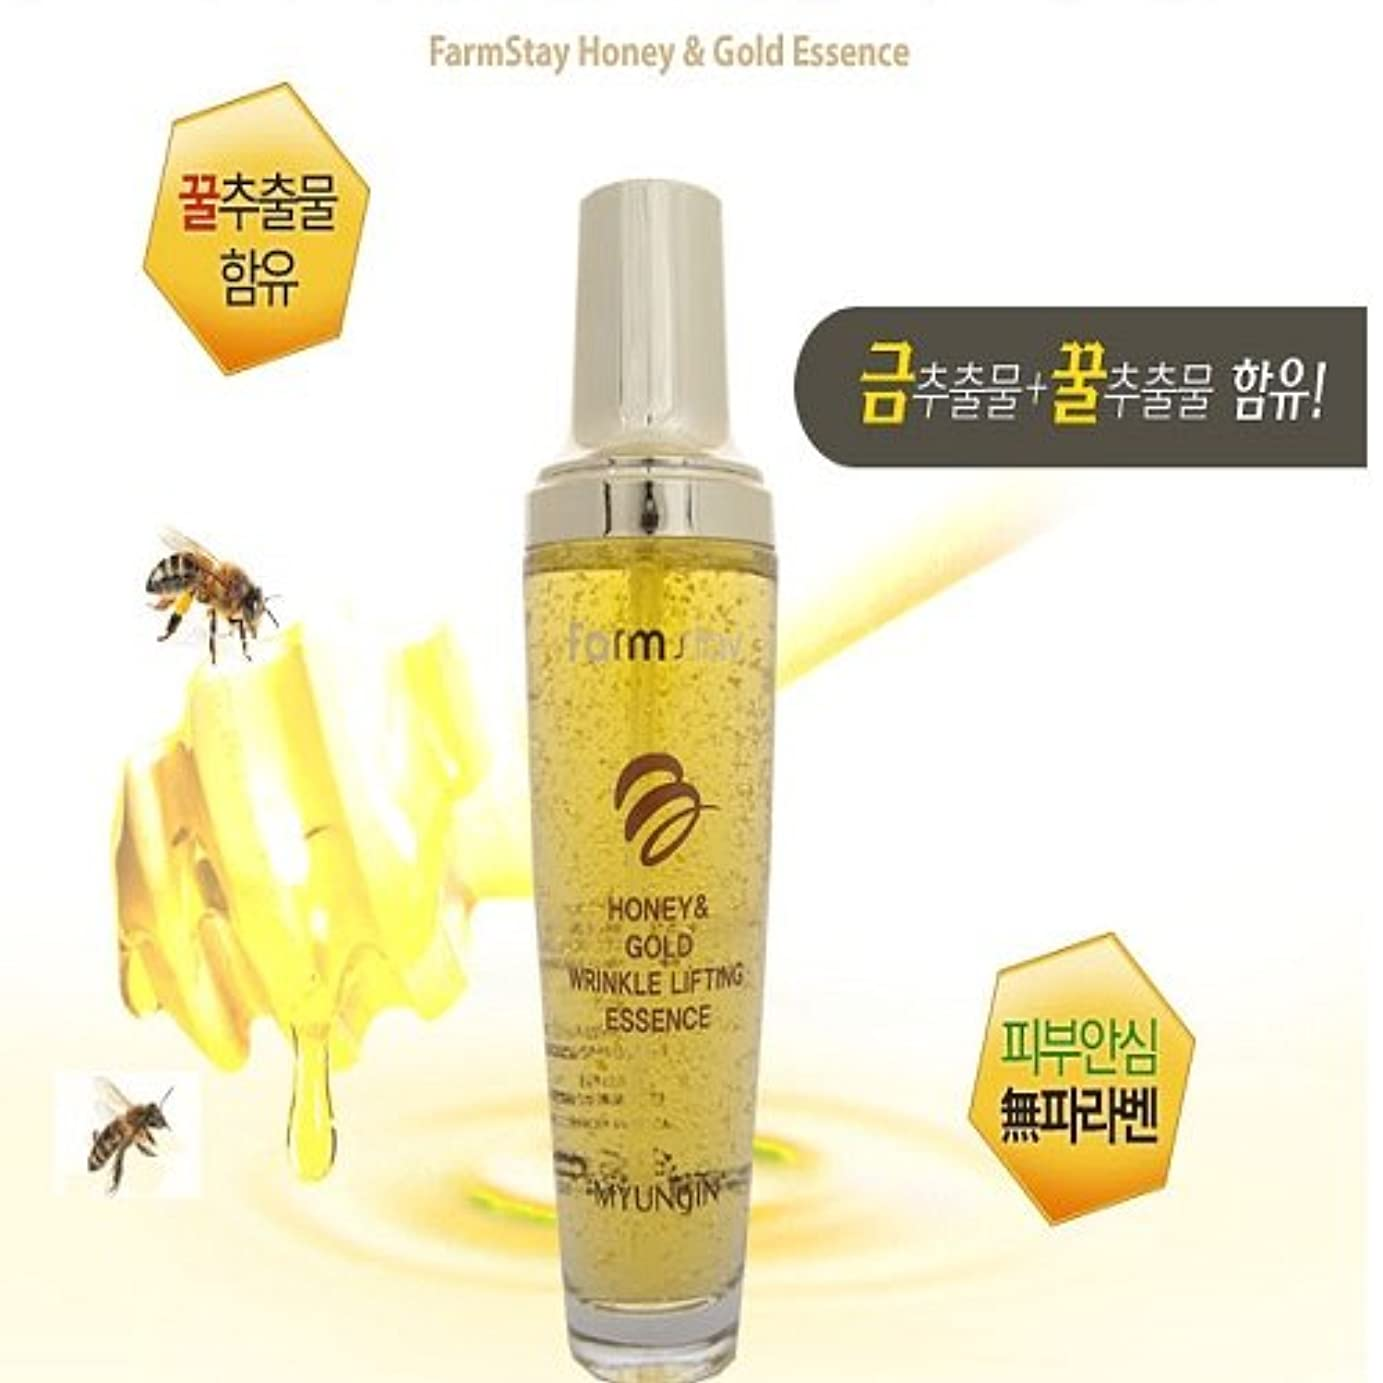 できた信頼性のあるエッセンス[FARM STAY] Honey & Gold Wrinkle Lifting Essence 130ml